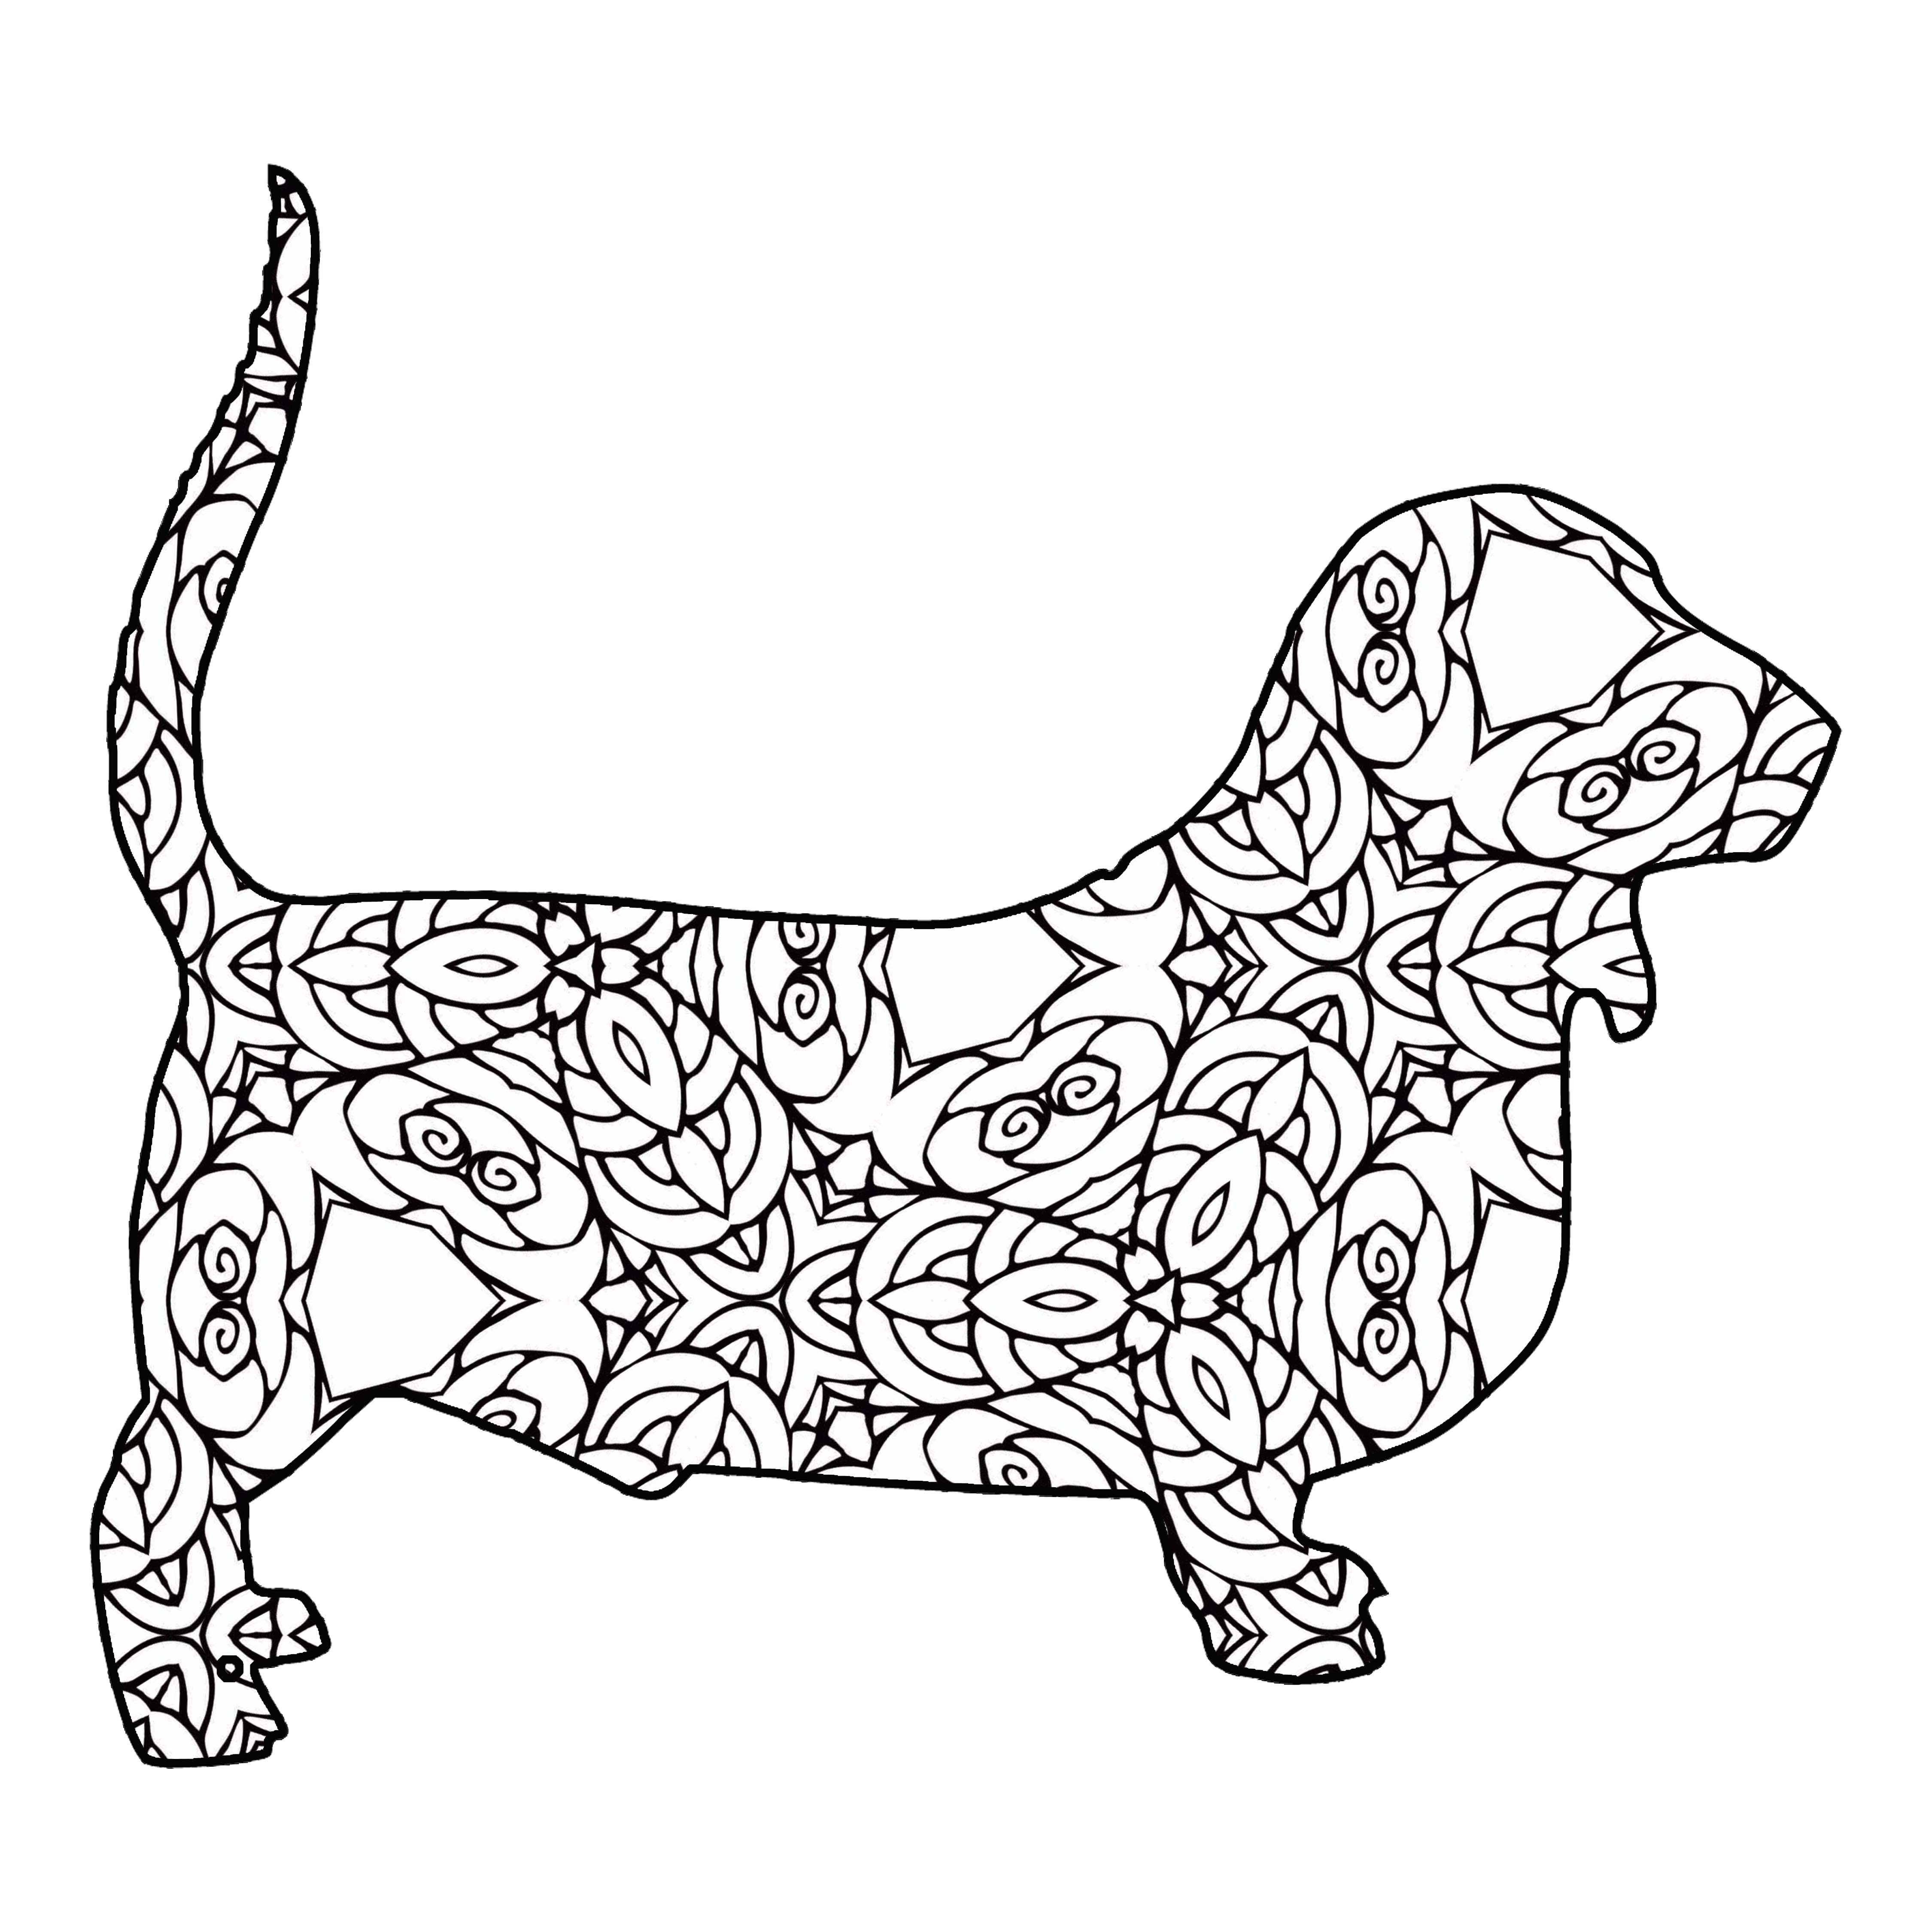 4500x4500 Italian Greyhound Coloring Page Hound Dog